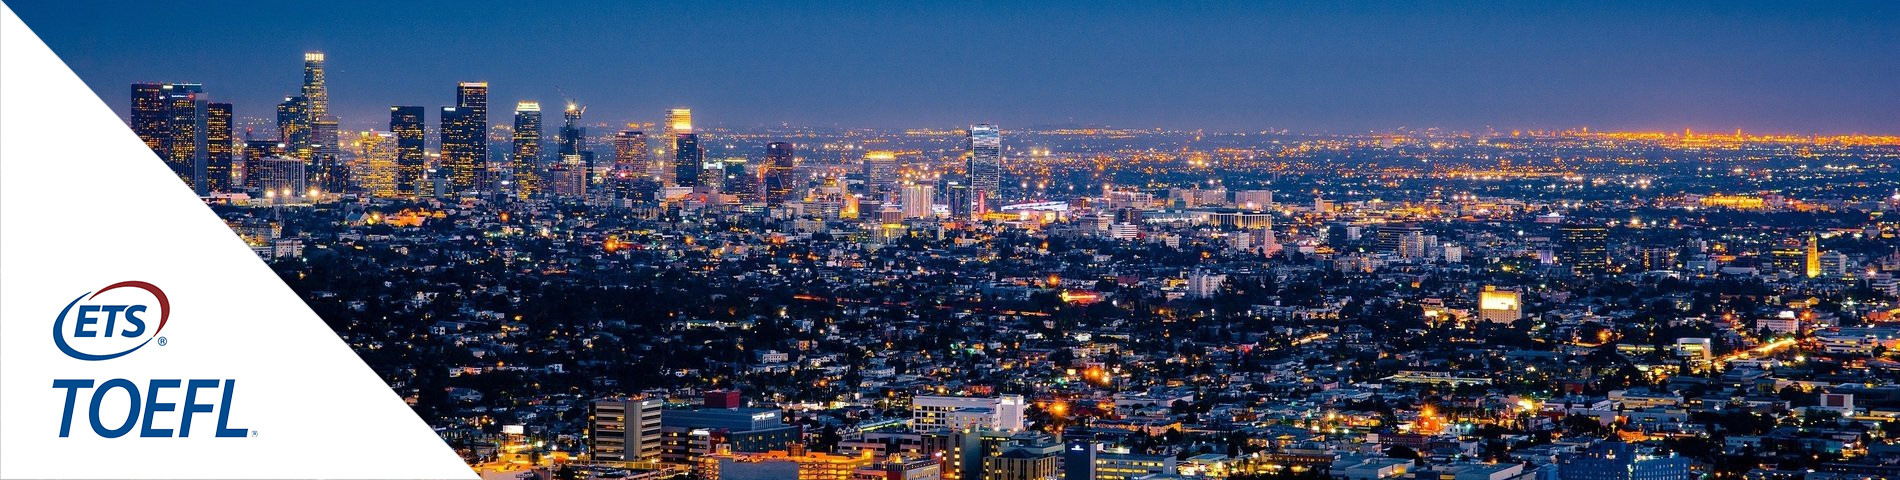 Los Angeles - TOEFL